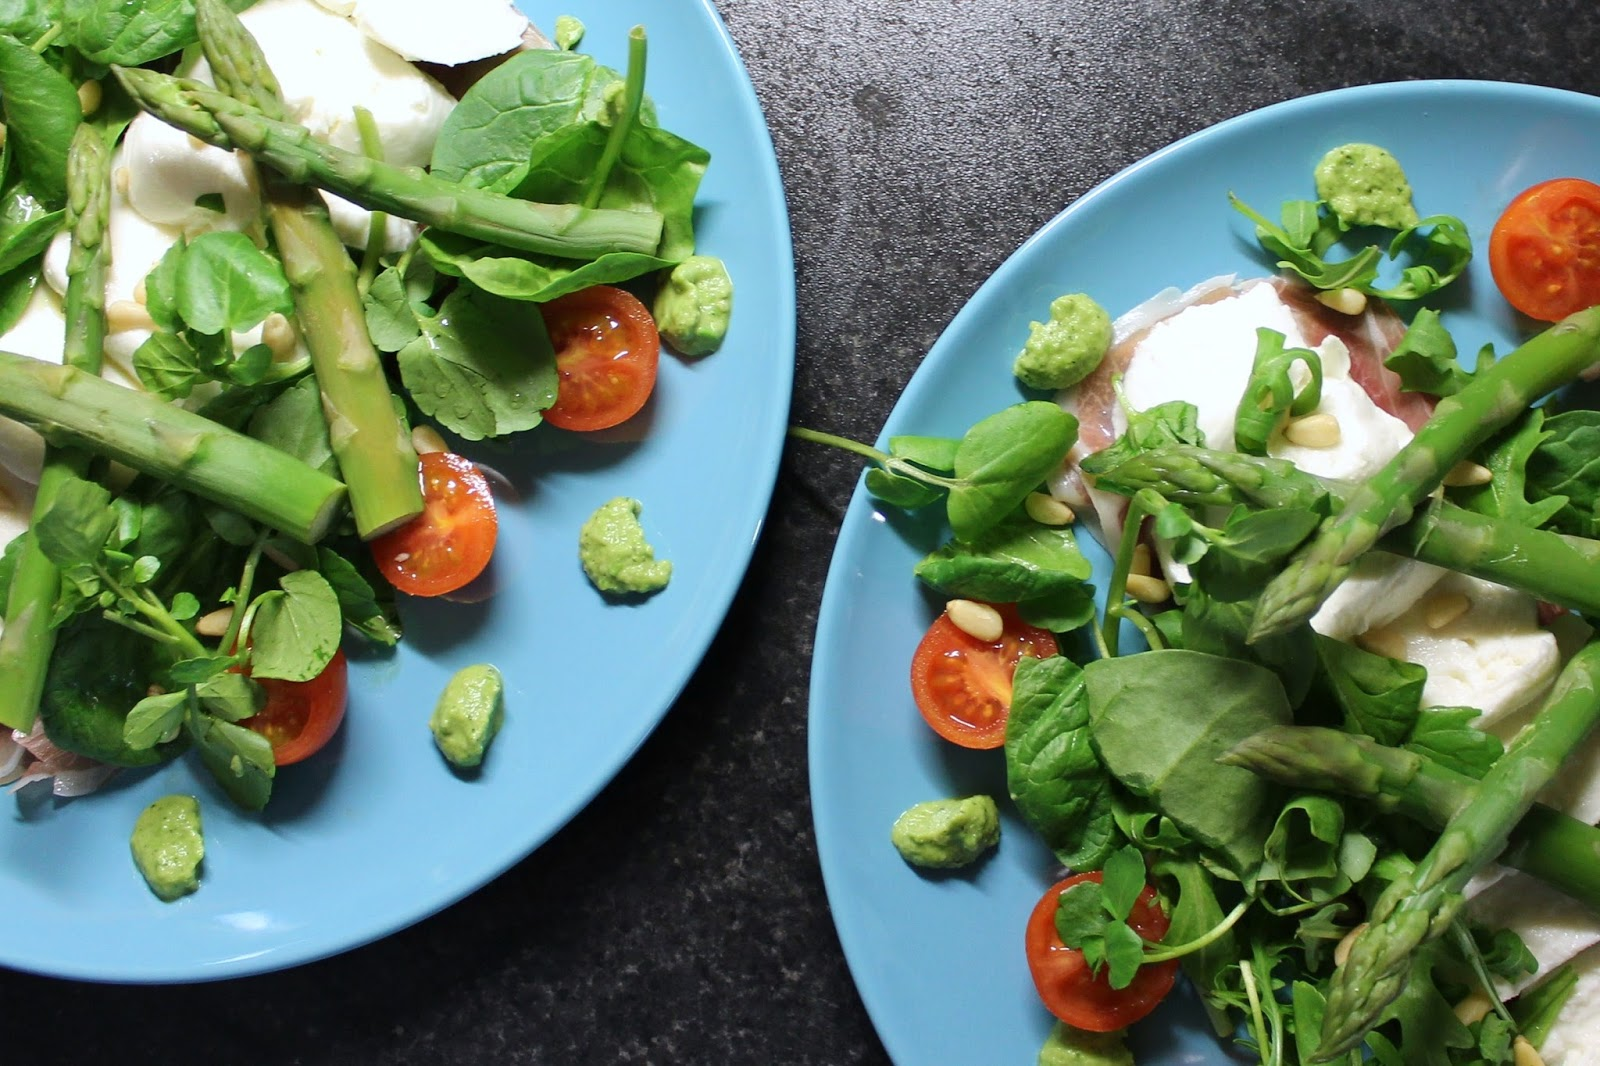 Buffalo mozzarella with Parma ham, asparagus, pea purée, mint, and cherry tomatoes drizzled with lemon and lime olive oil - Millennium Hotels Newcastle